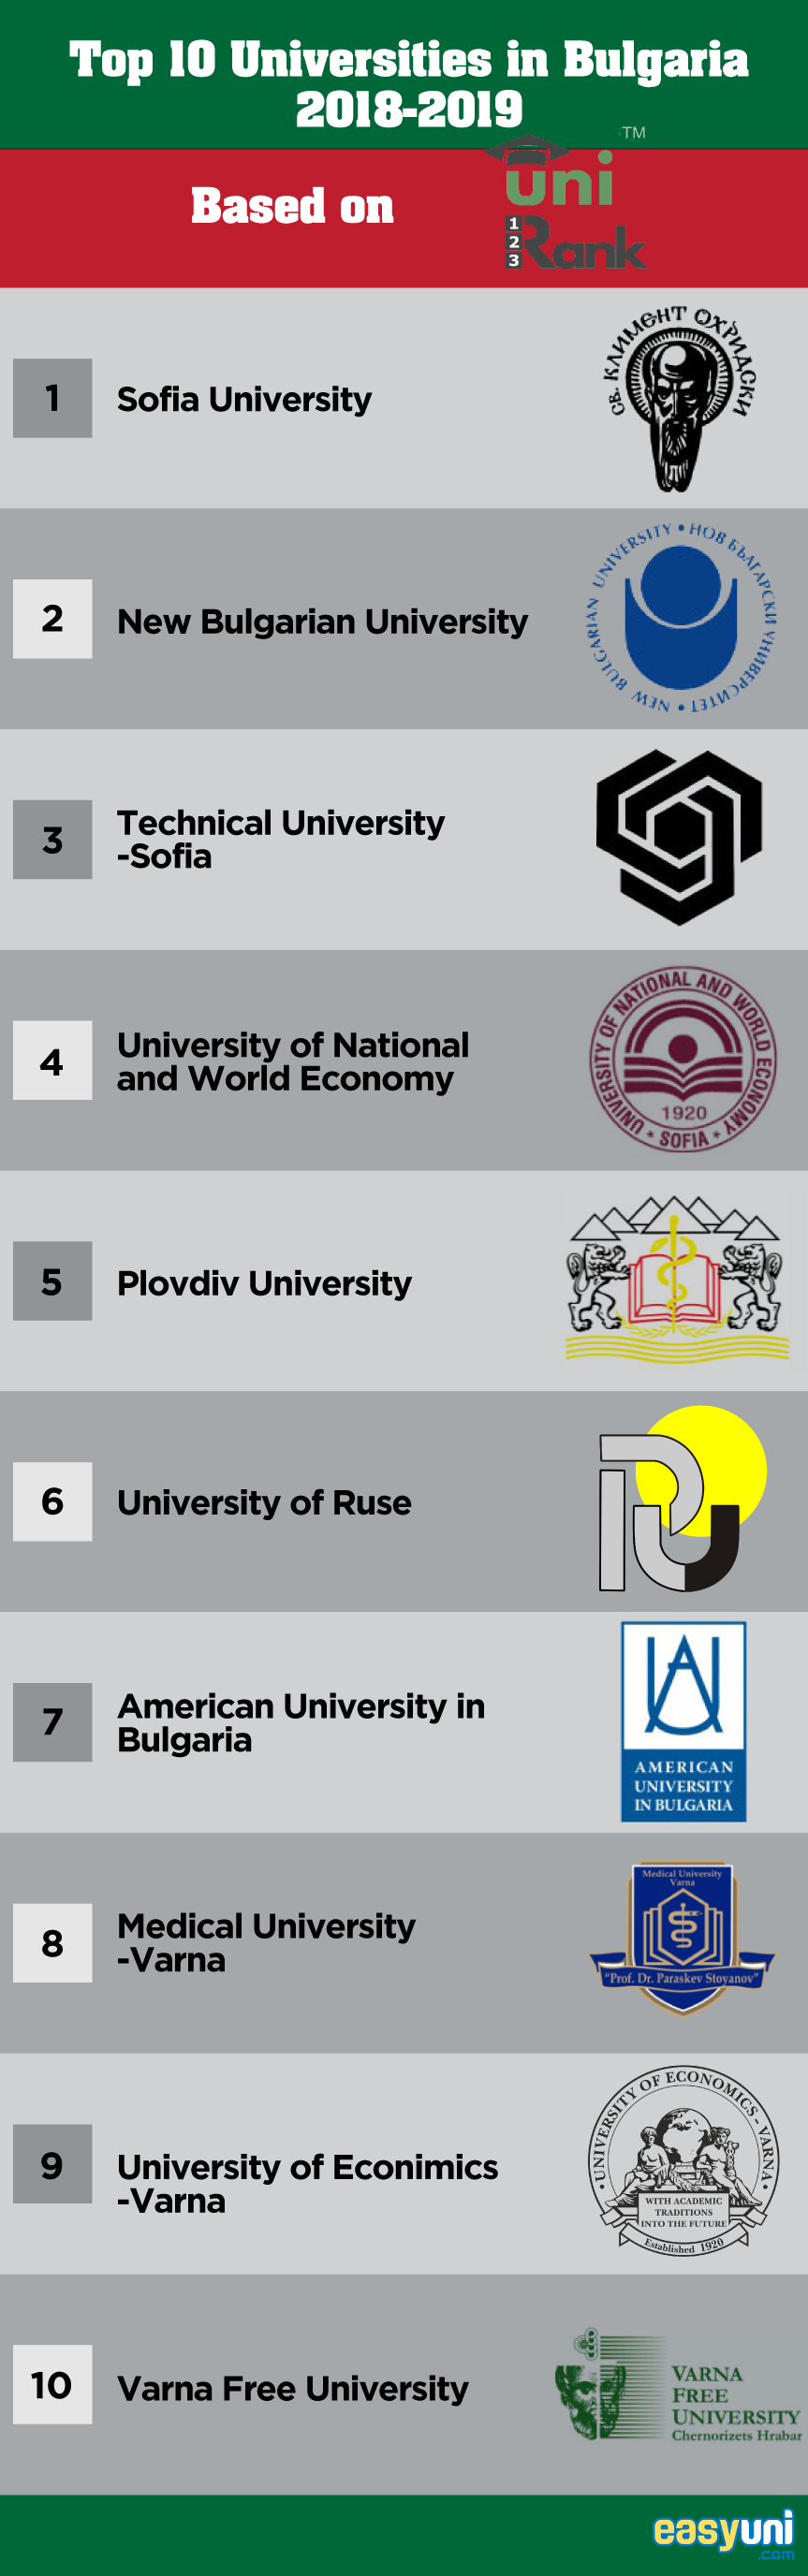 Top 10 Universities in Bulgaria 2019